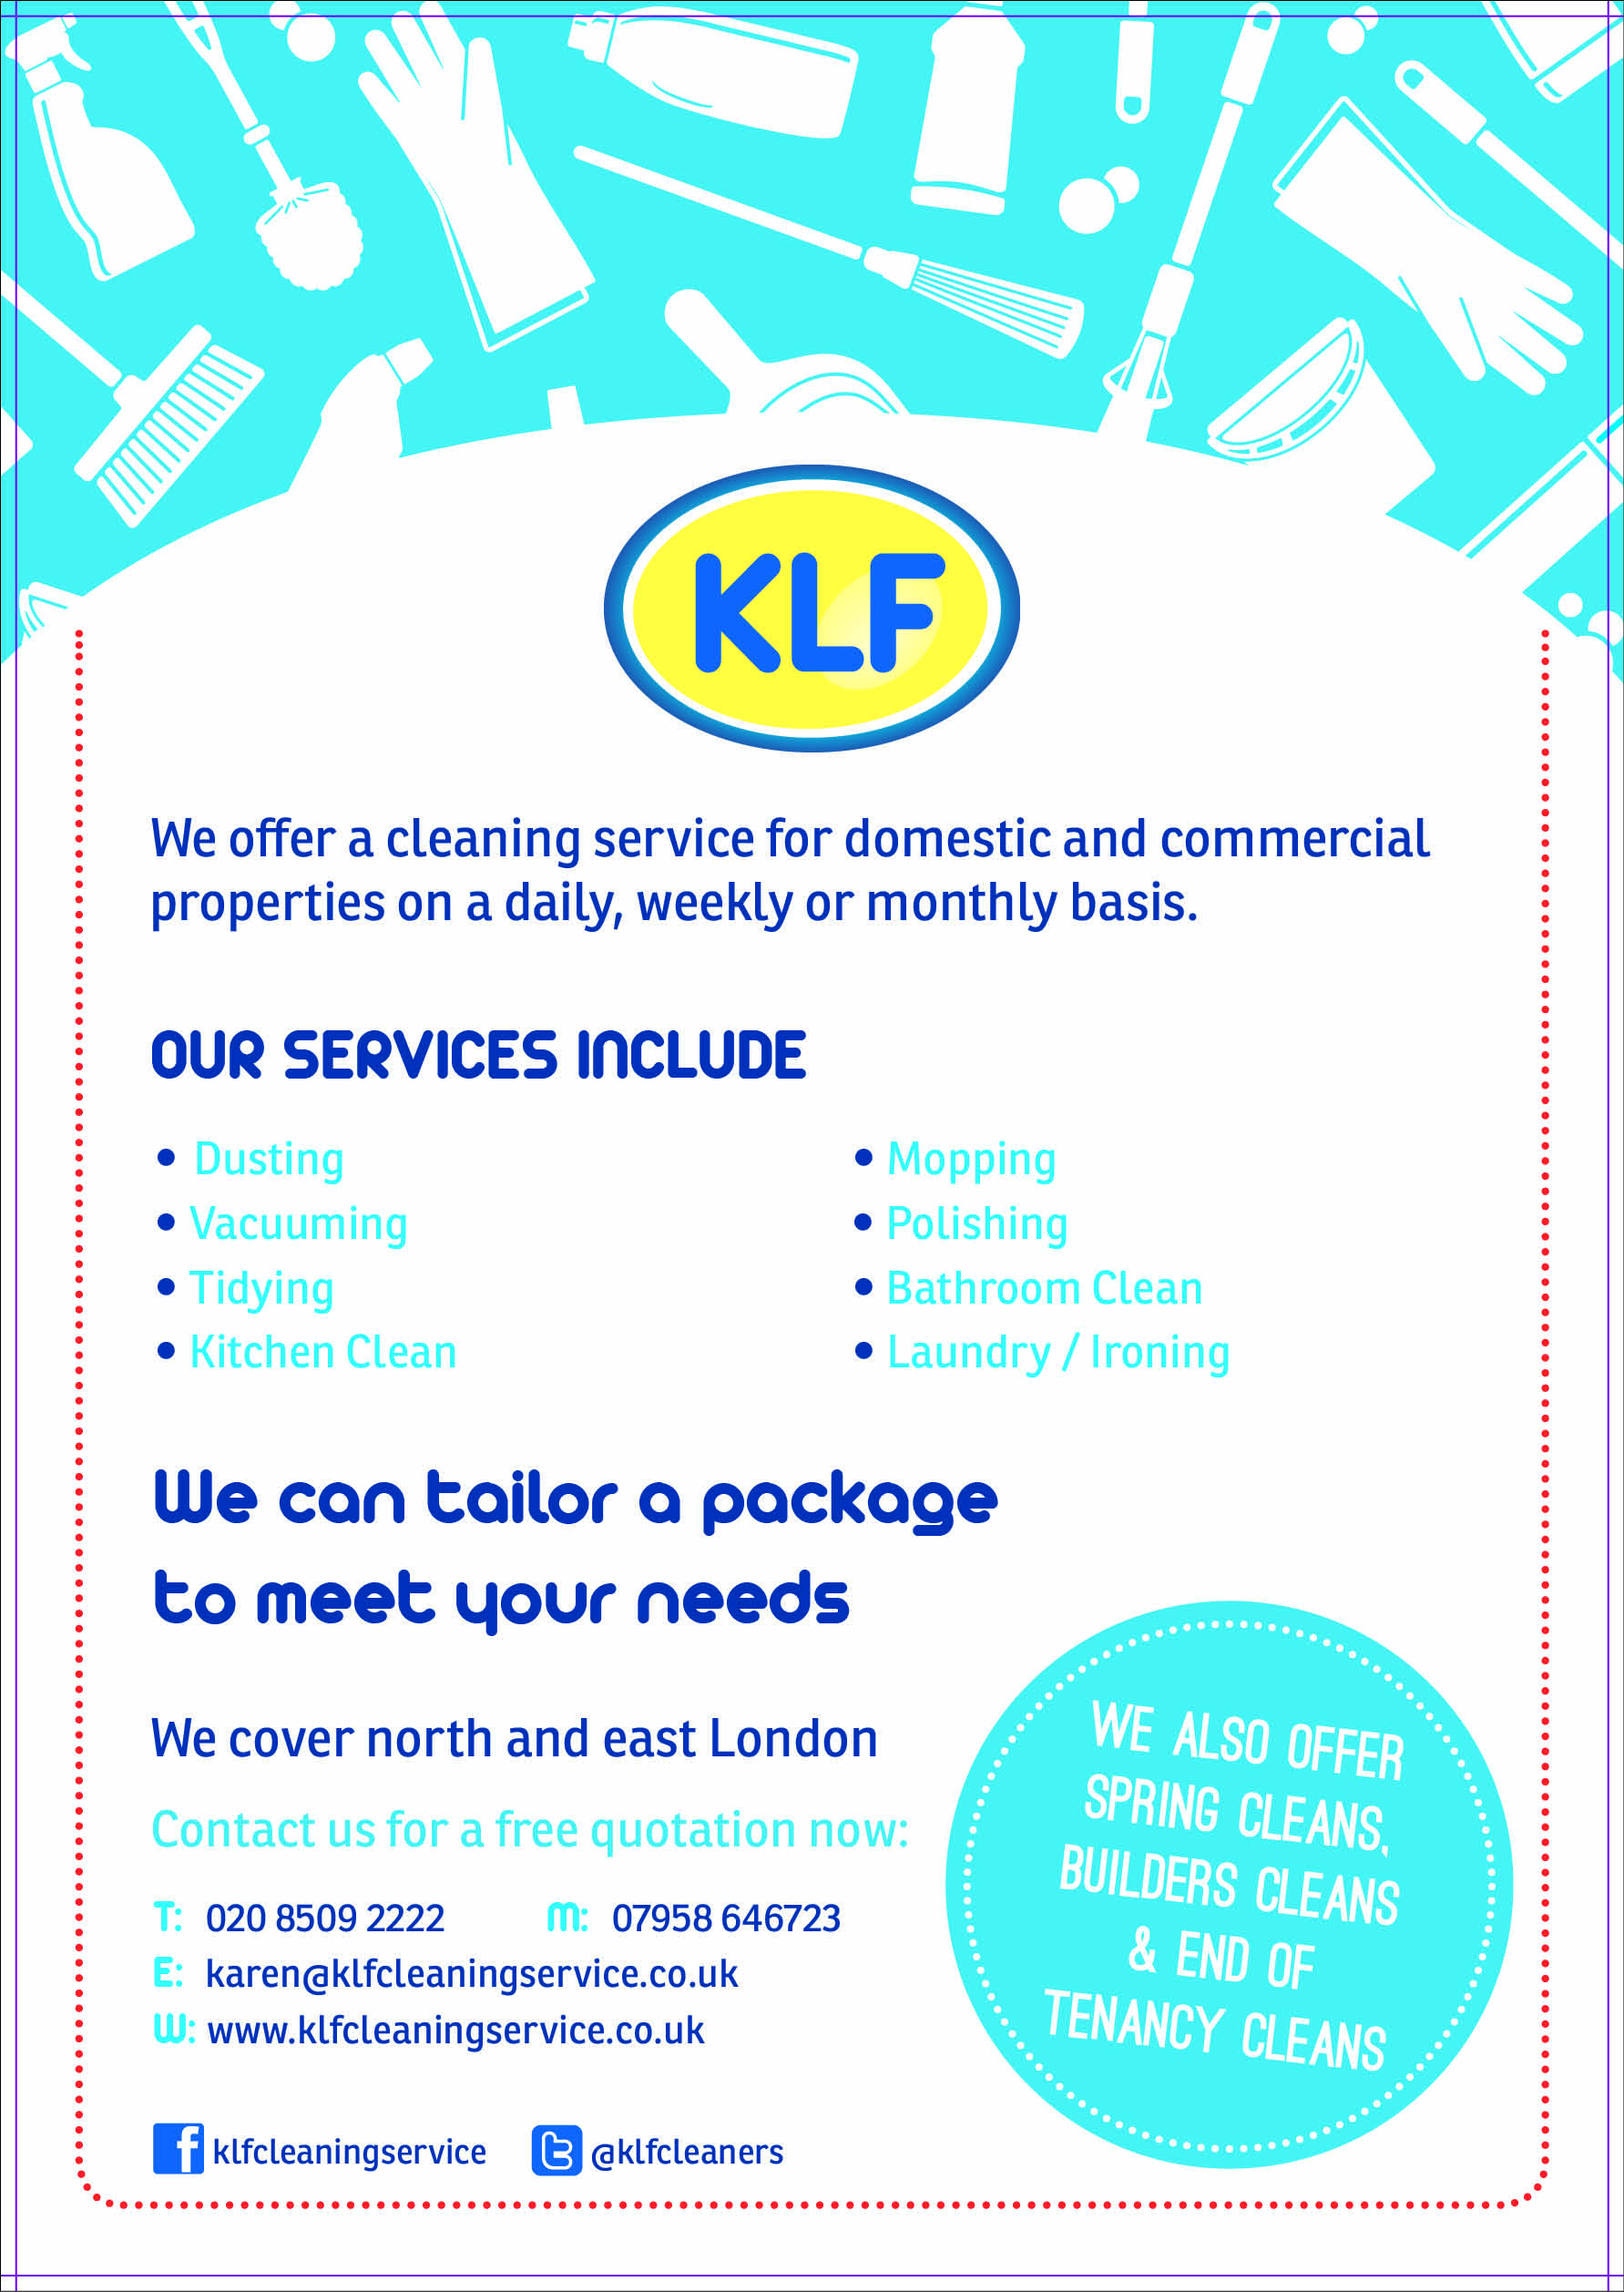 Klf Cleaning Service